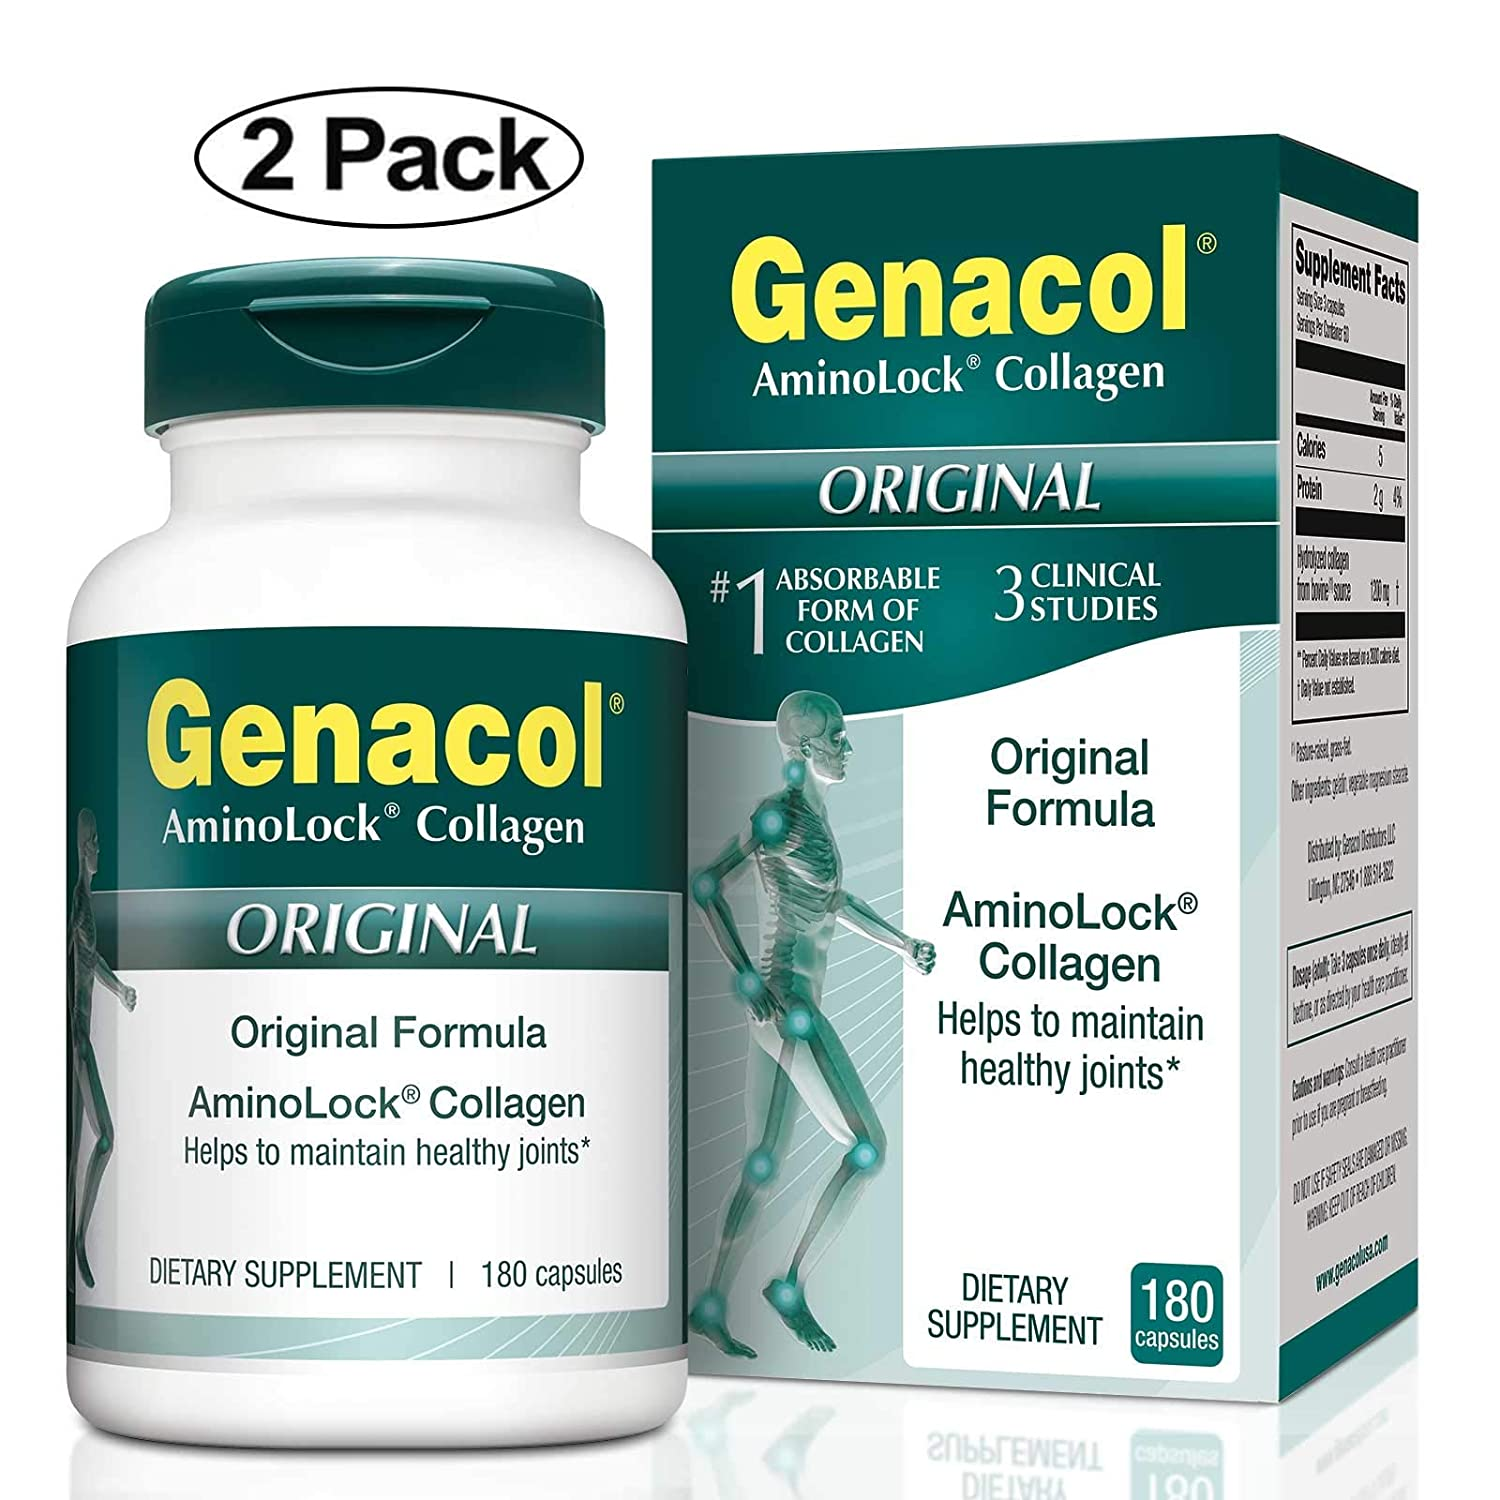 GENACOL Original Joint Supplements for Men & Women (180 Capsules) |Hydrolyzed Collagen Peptides for Healthy Joints, Cartilage, Bones, Tendon and ...